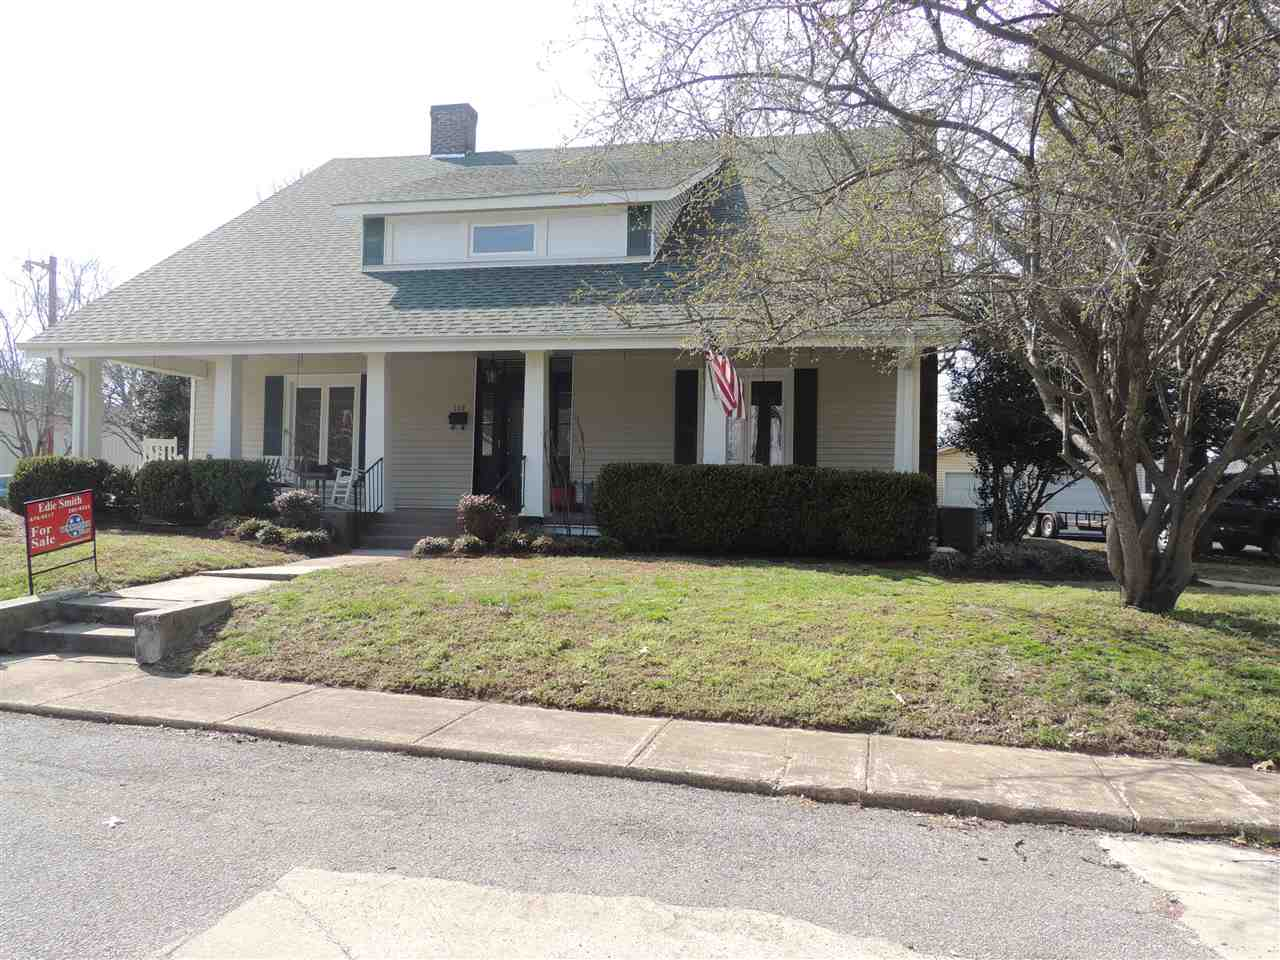 109 N Jackson St Street,Newbern,Tennessee 38059,5 Bedrooms Bedrooms,2 BathroomsBathrooms,Residential,109 N Jackson St Street,181770